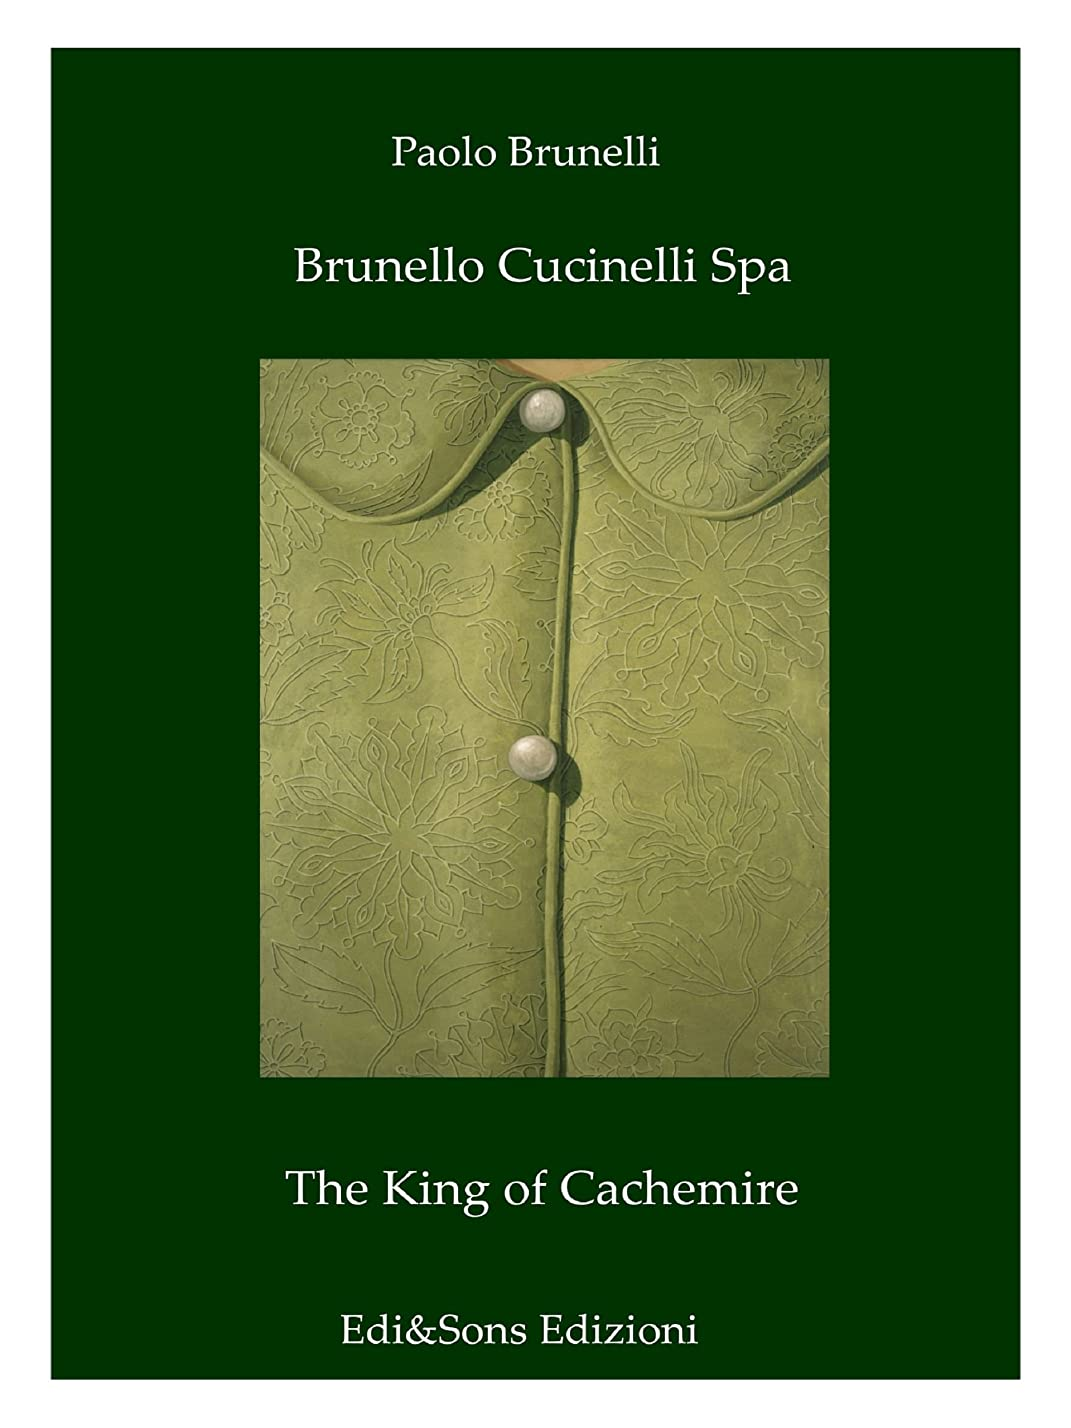 ステップ不振従順なBrunello Cucinelli Spa The King of Cachemire: Wonderful story in the fashion world! (English Edition)